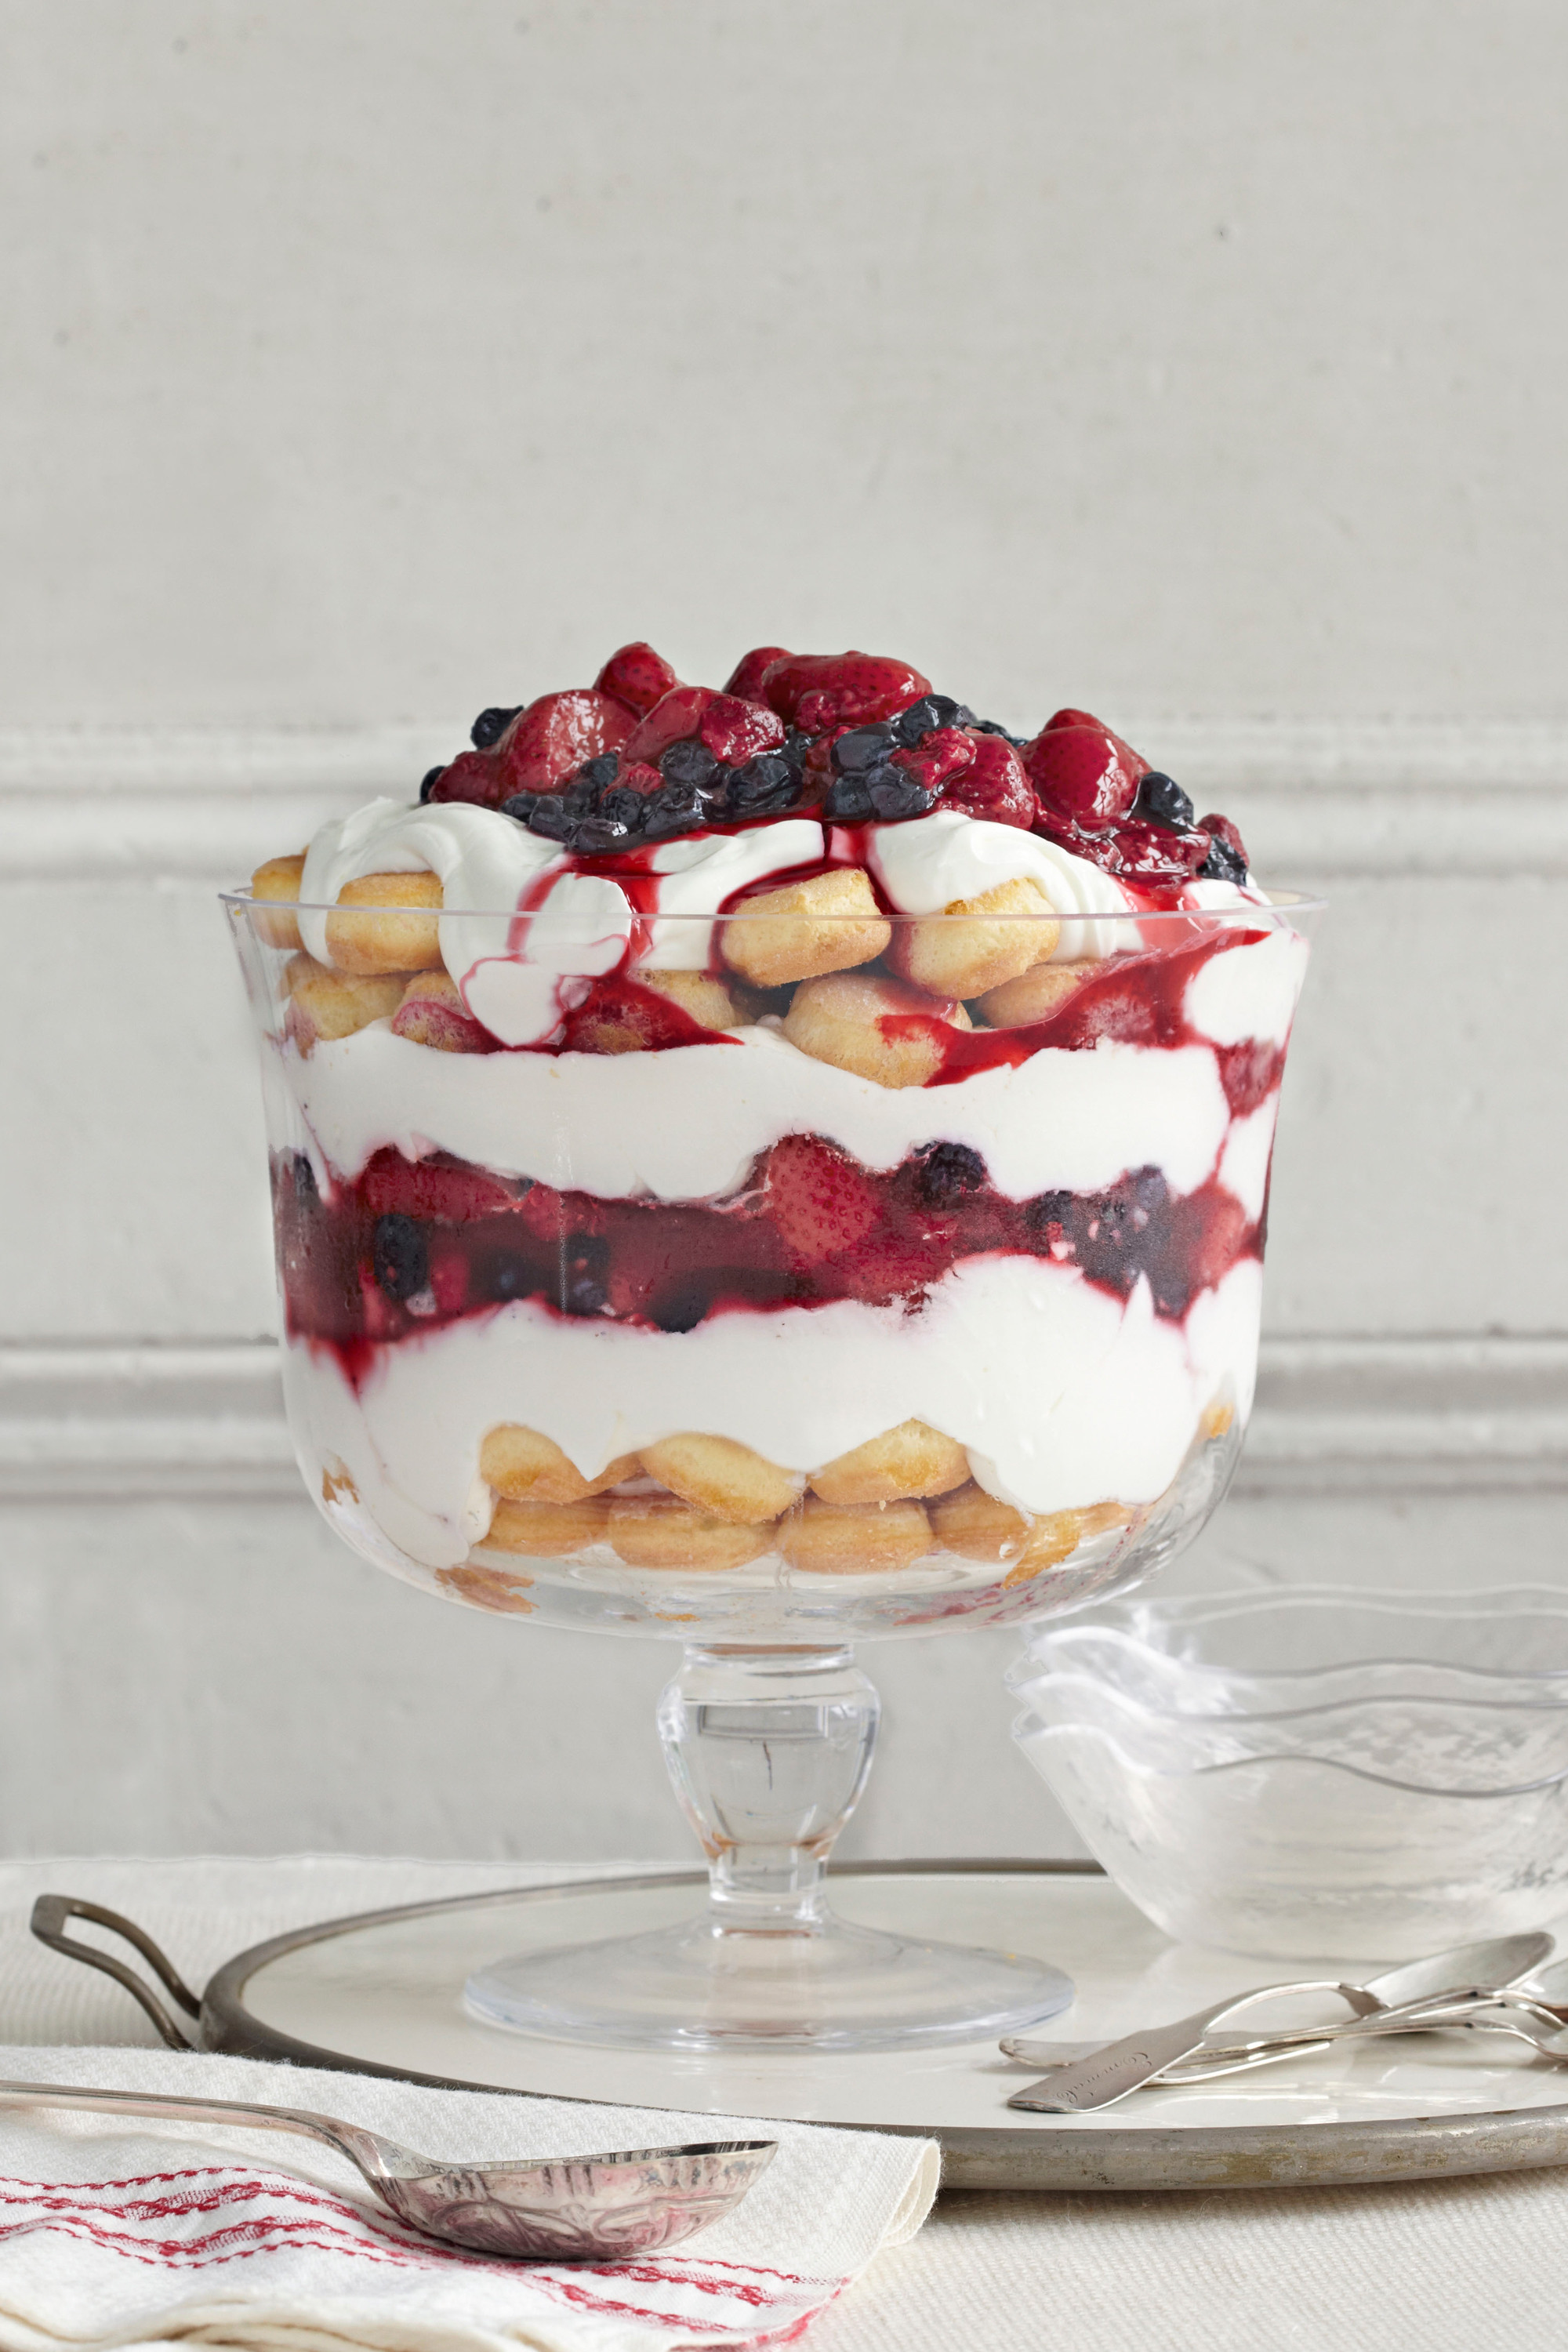 Triffle Dessert Recipe  25 Easy Trifle Recipes Your Guests Will Love How to Make